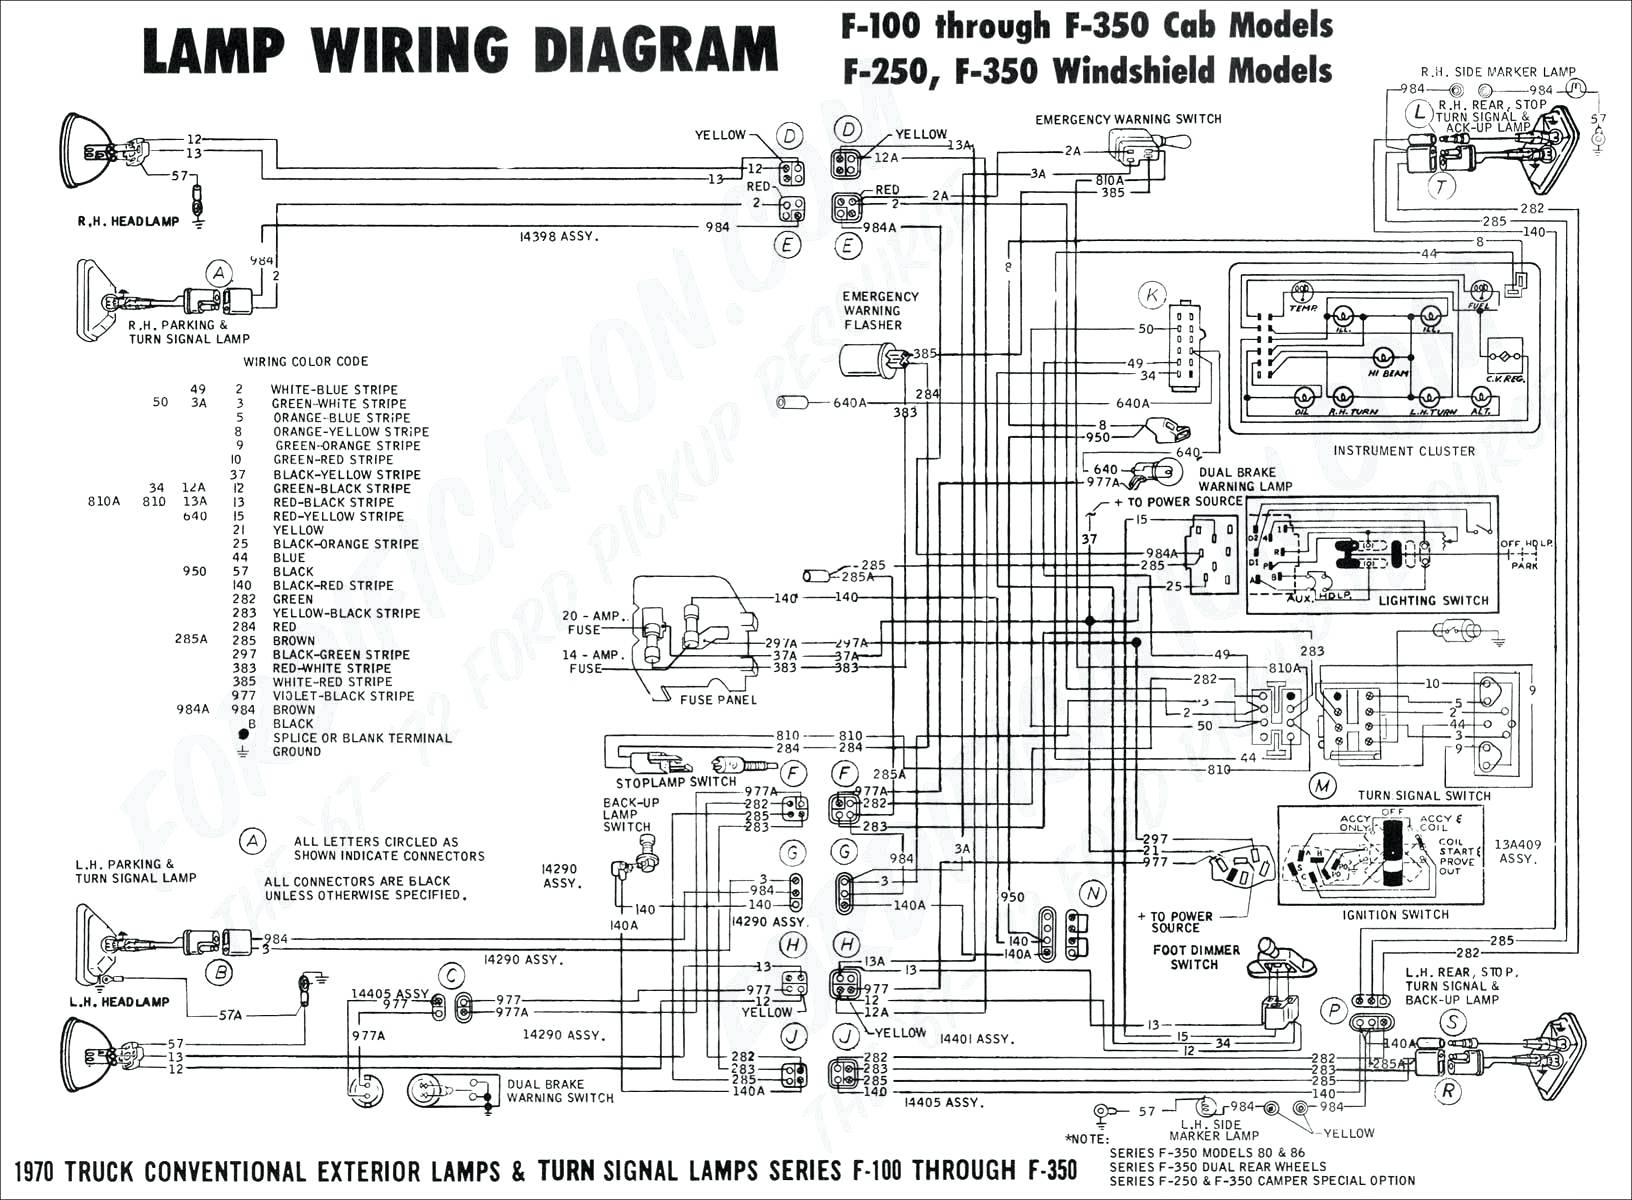 omron mk2p s wiring diagram Collection-fuse box diagram moreover bmw wiring diagrams further bmw 325i rh masinisa co 14-r